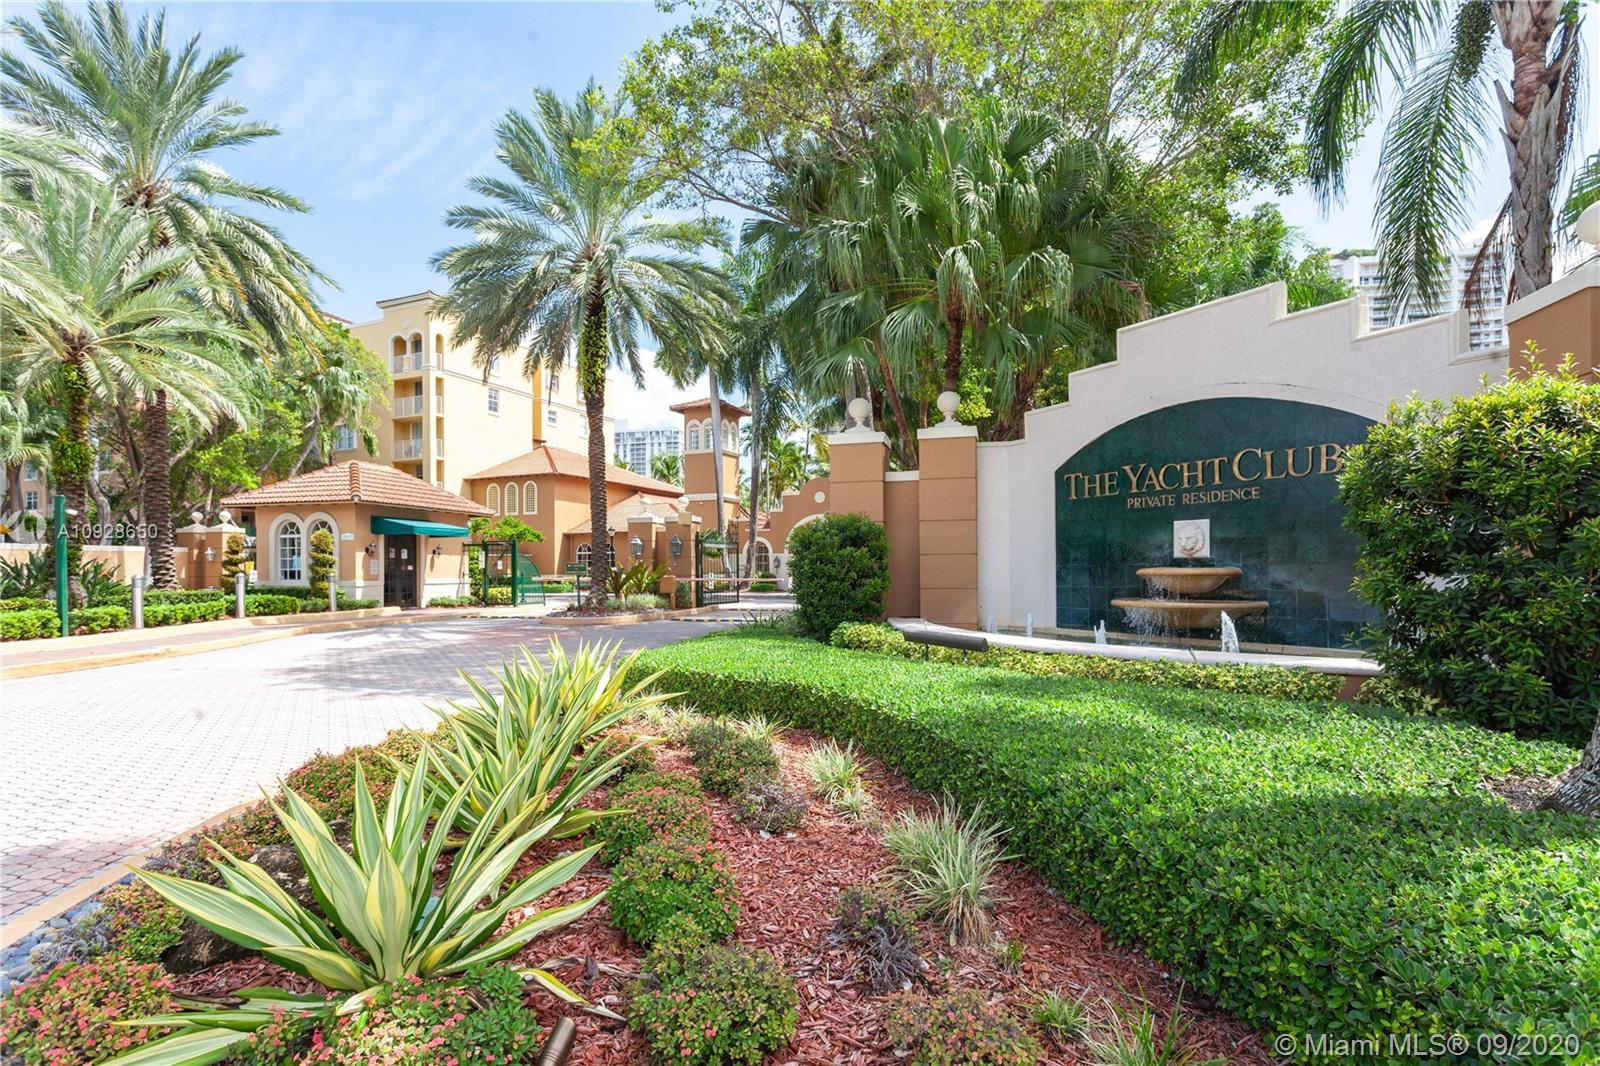 MOTIVATED SELLER ! Come live the Yacht Club lifestyle ! Enter into this tropical paradise where amen